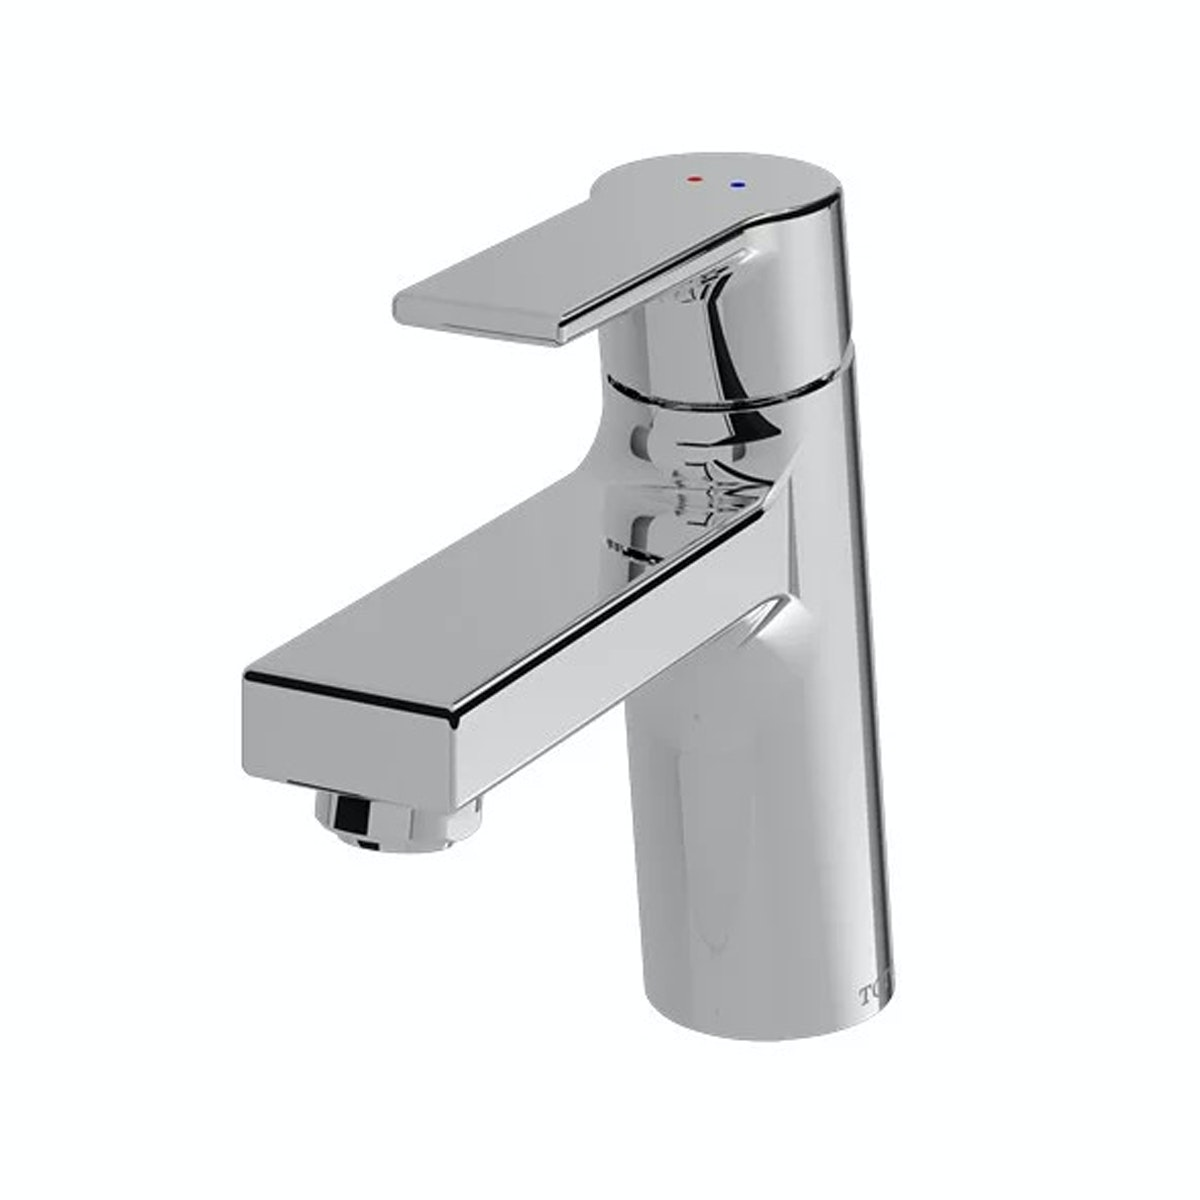 TOTO TX108LJ Lavatory Faucet With Pop Up Waste / Keran Dengan Afur